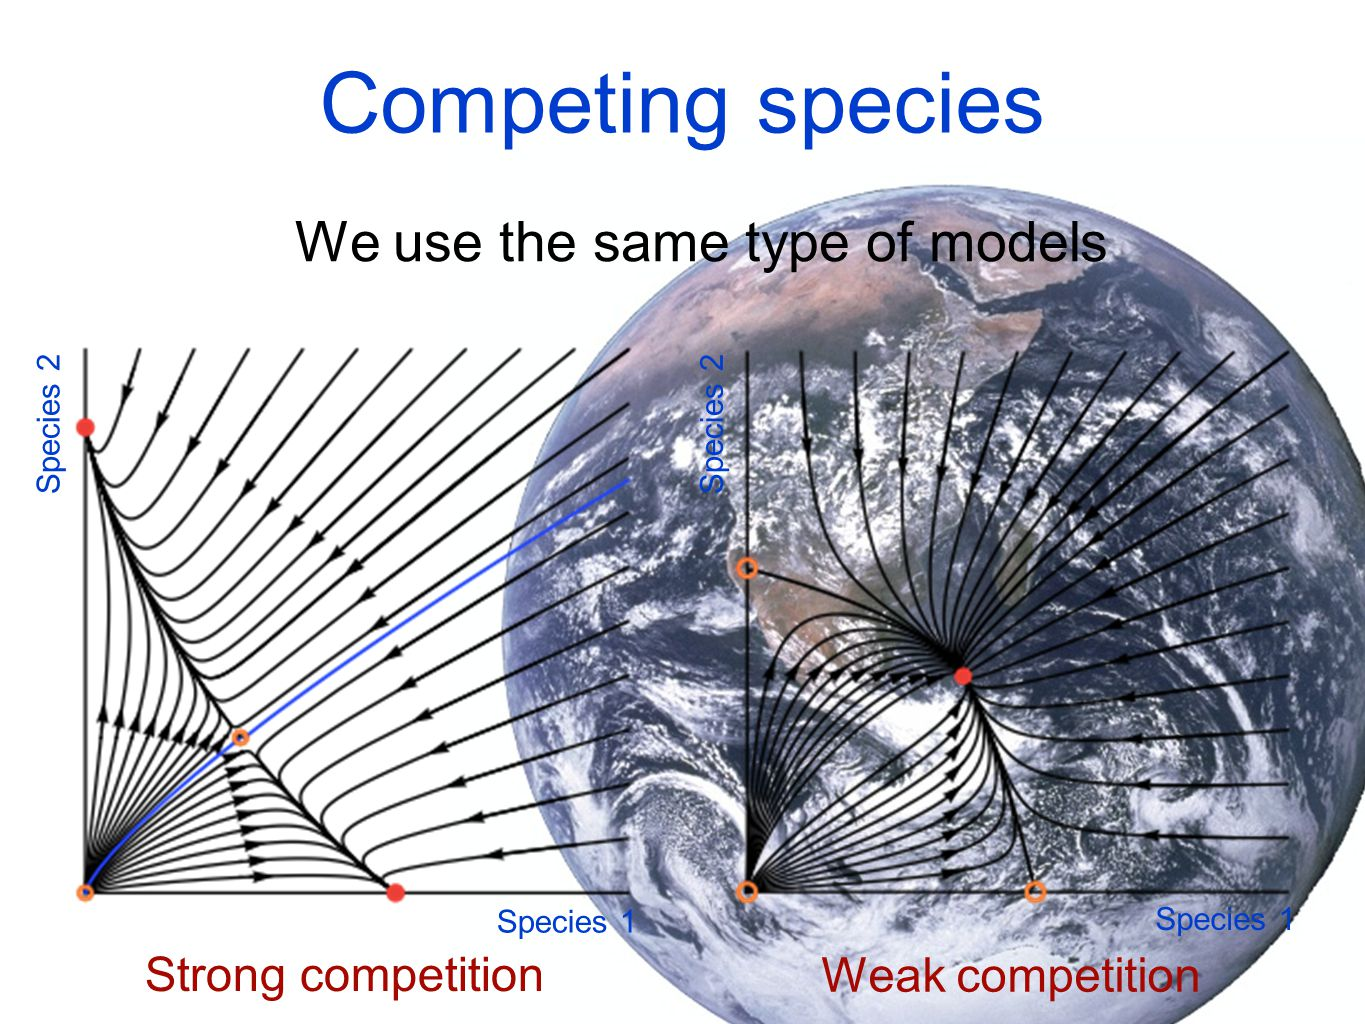 Competing species We use the same type of models Strong competition Weak competition Species 1 Species 2